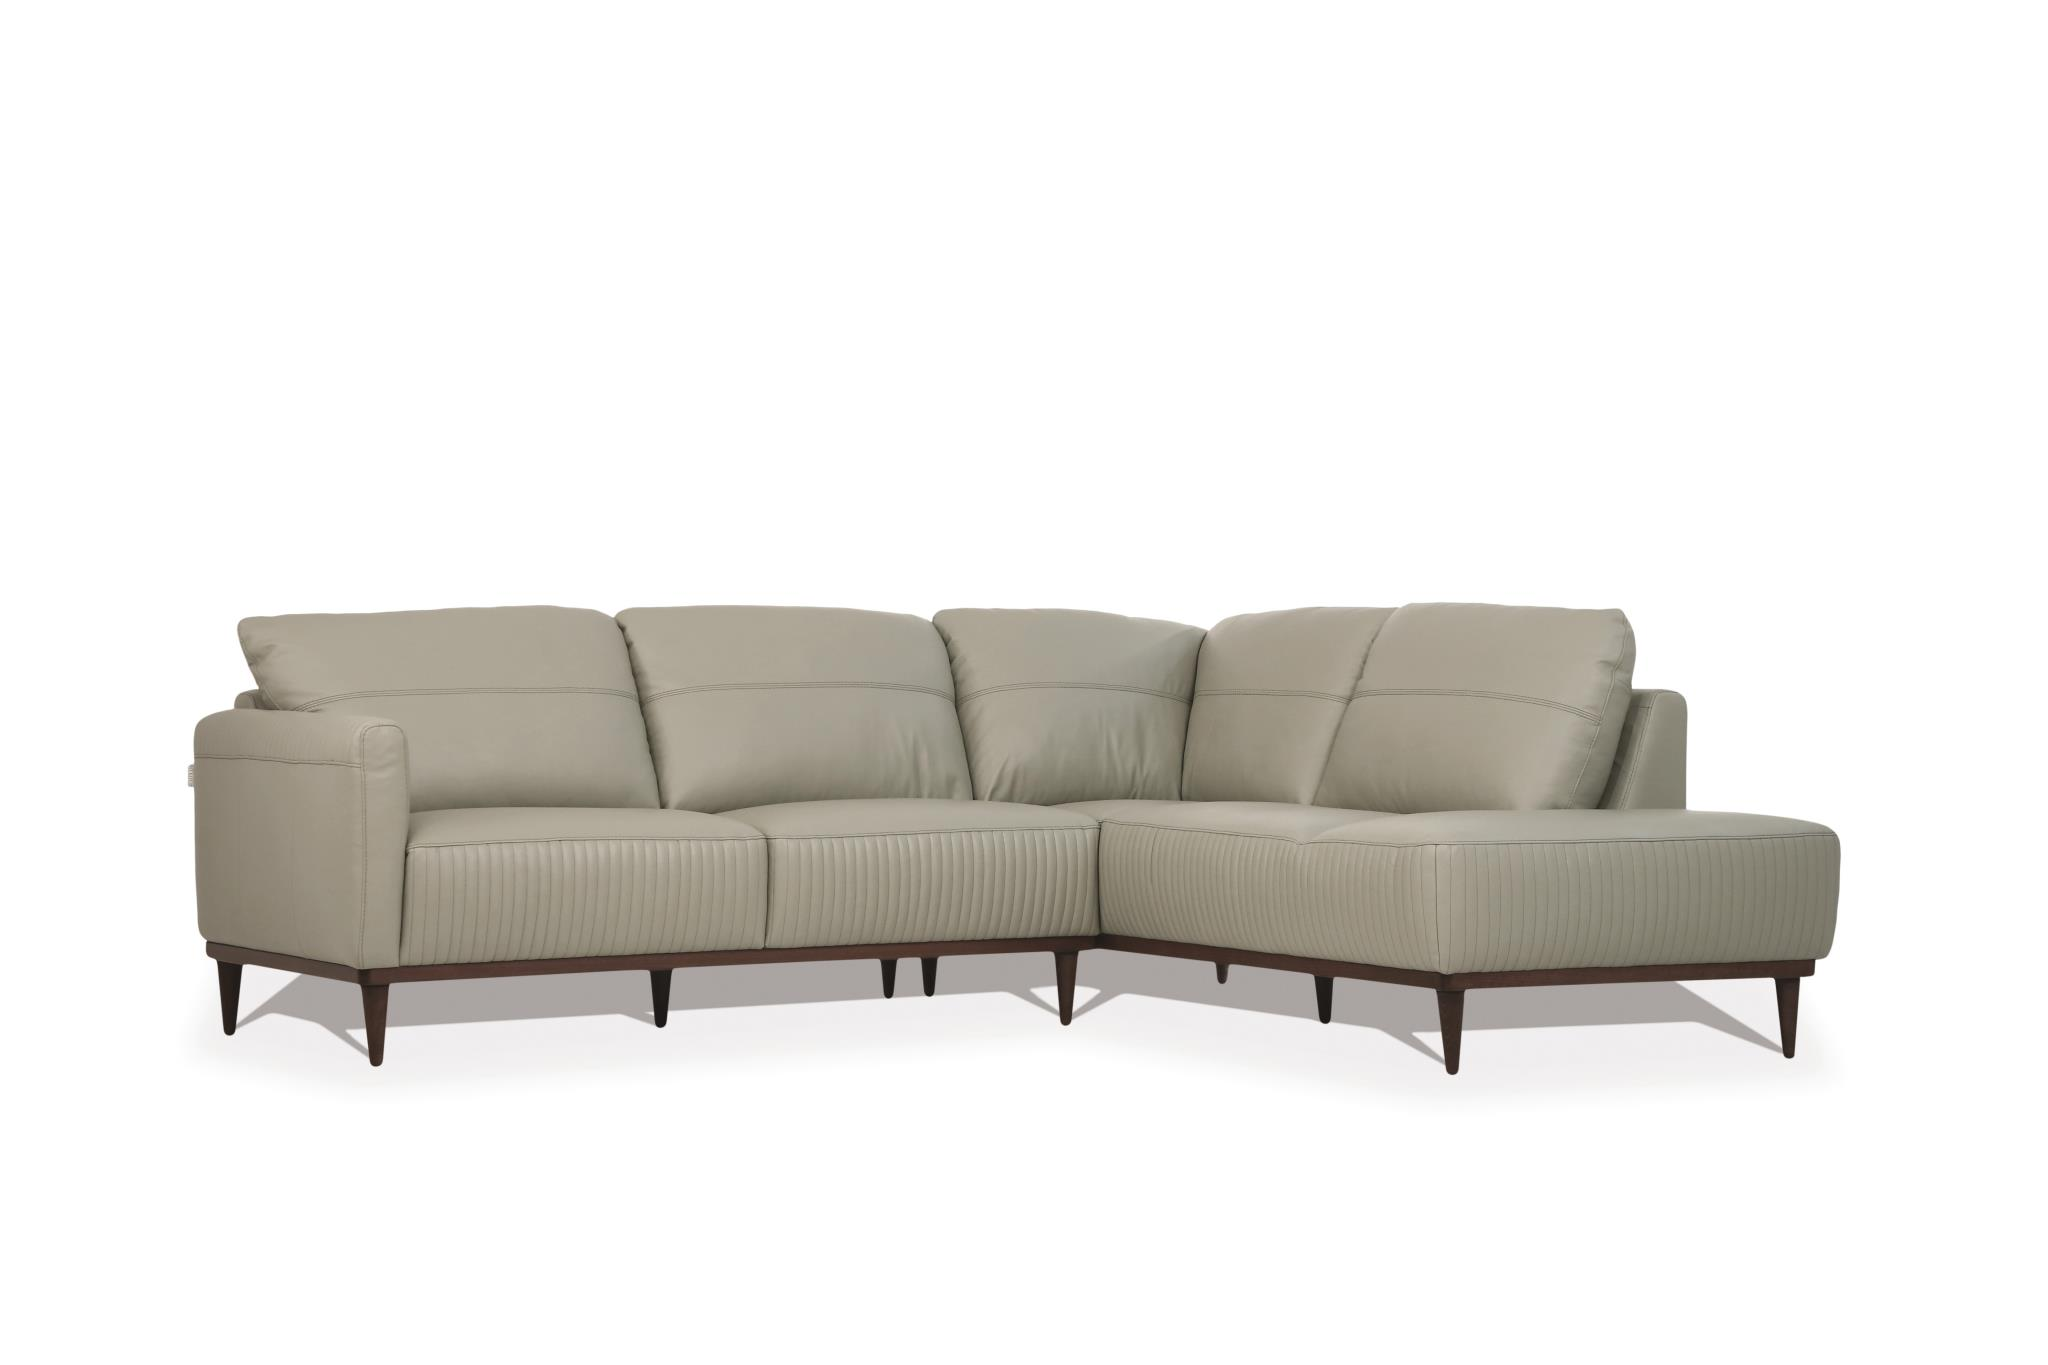 Airy Green Sectional Sofa w/ Right Facing Chaise Angle